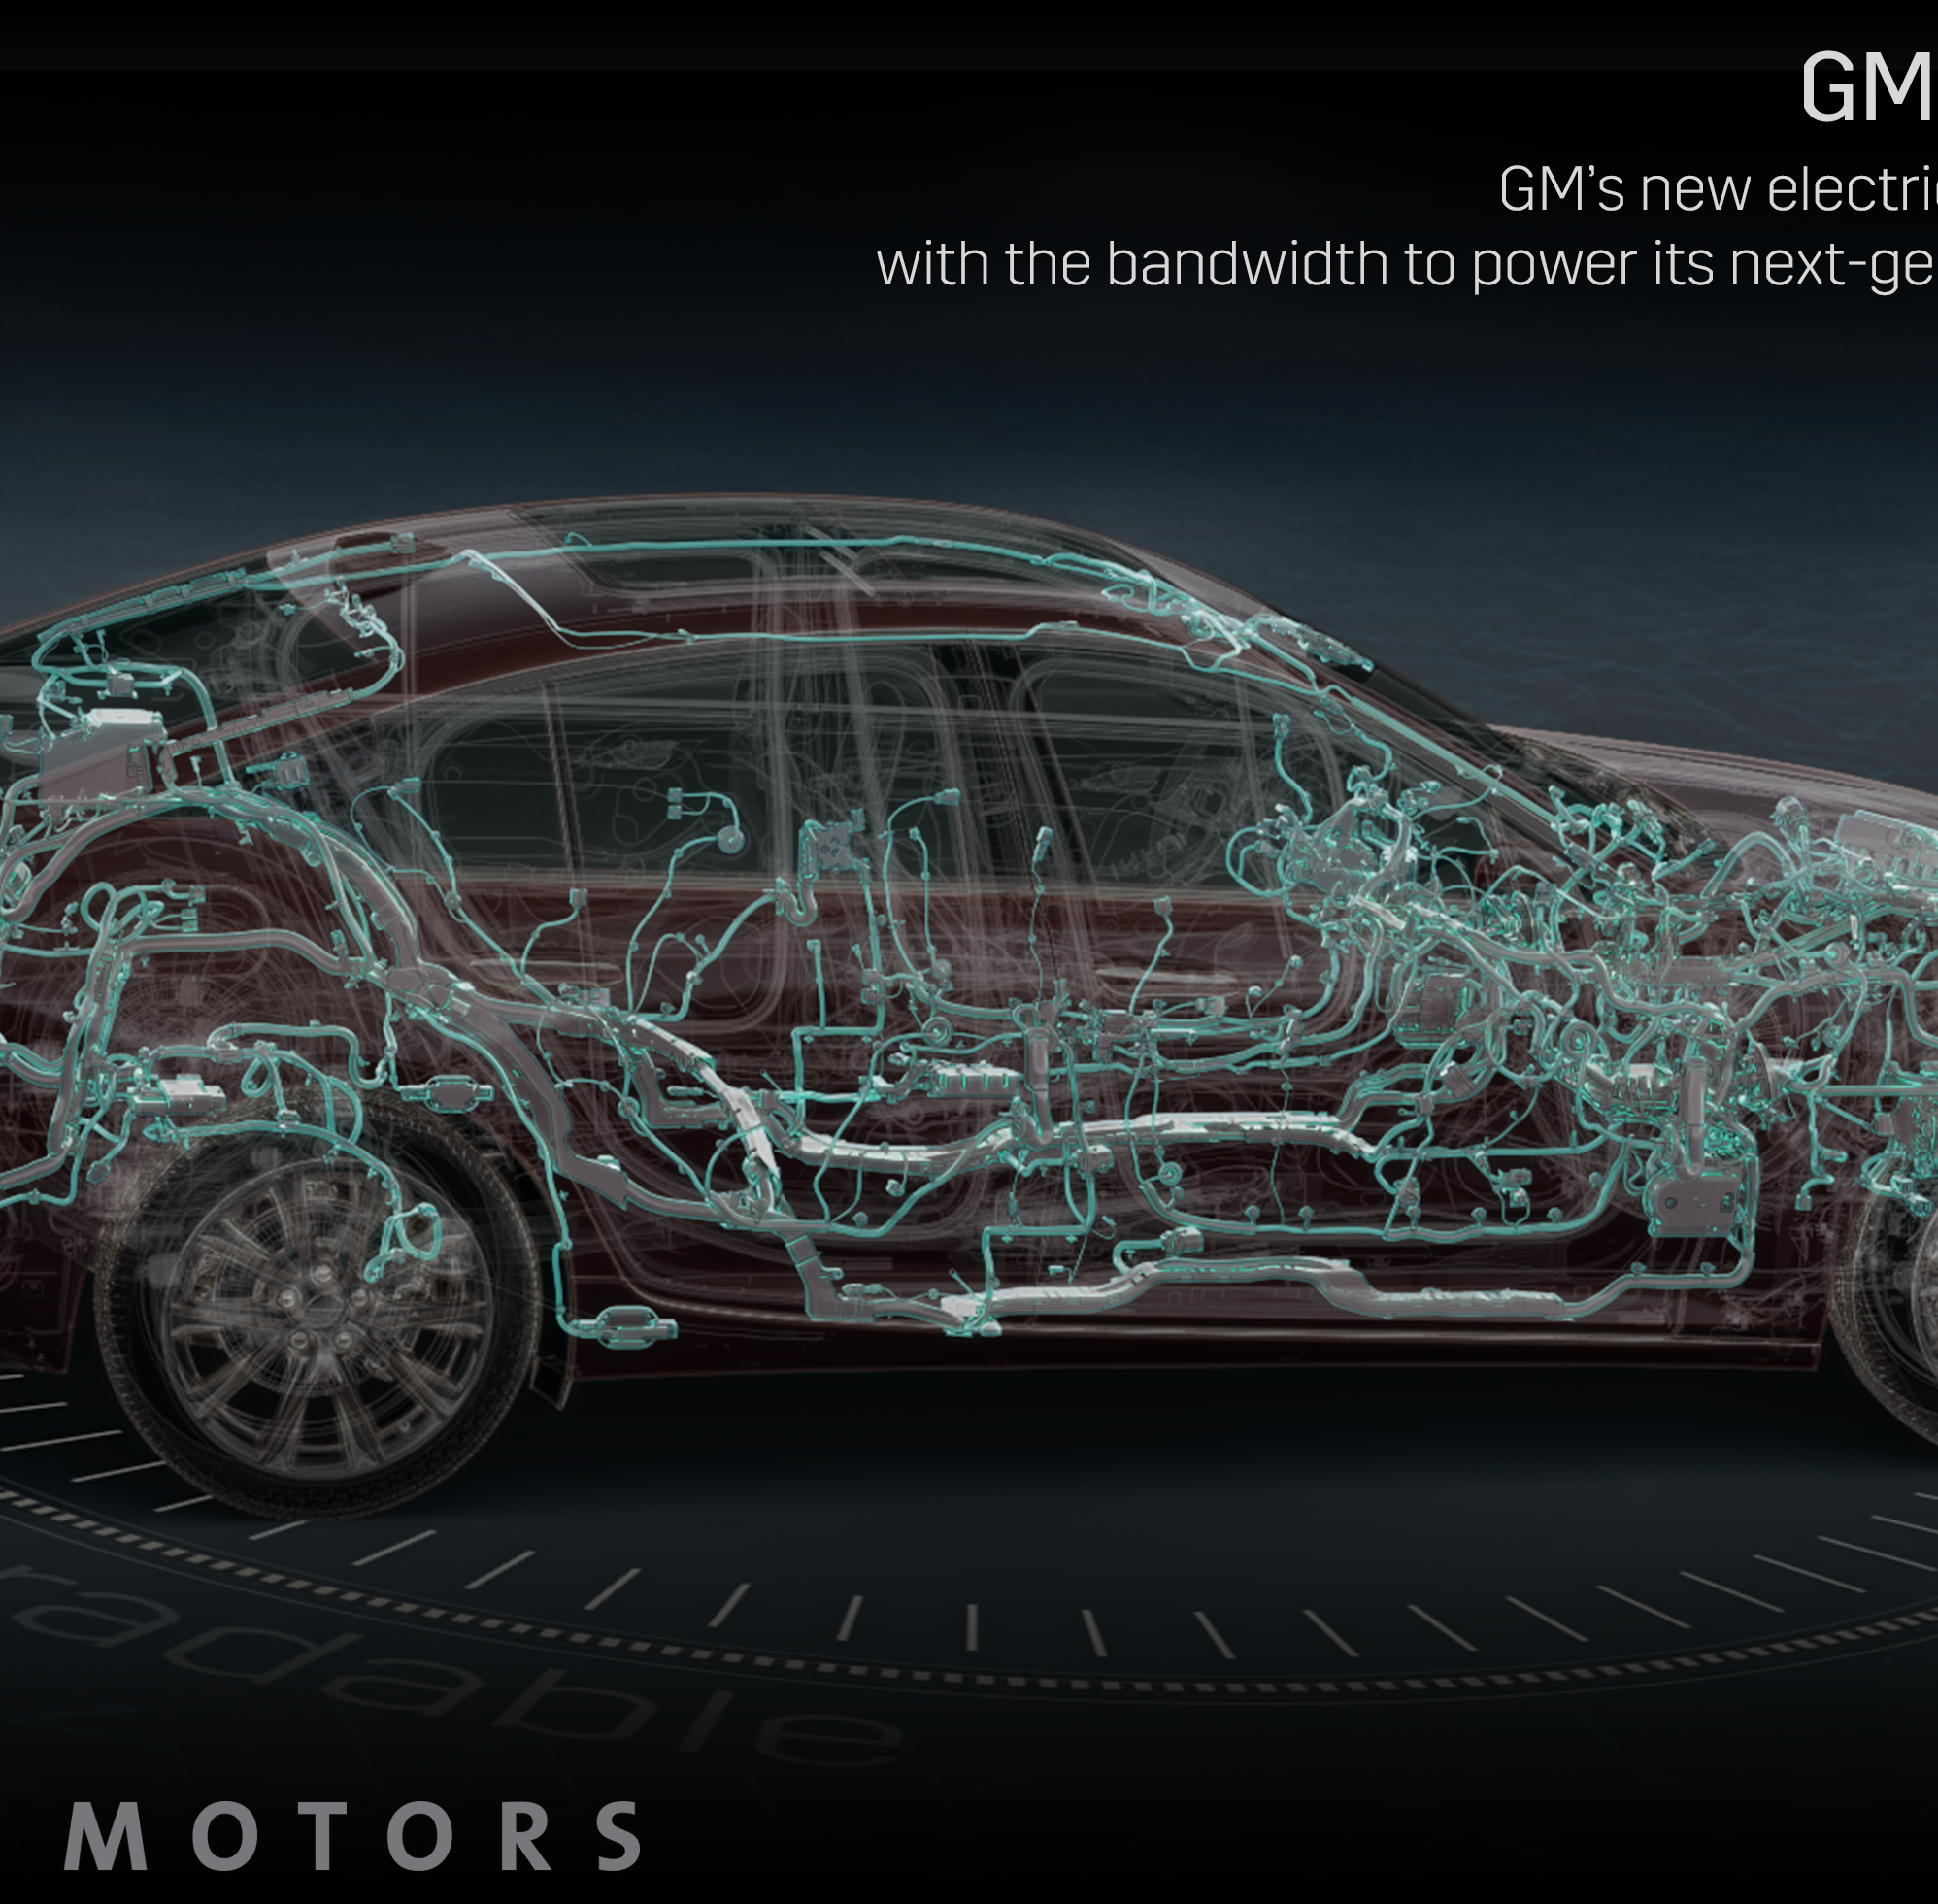 GM makes 'exponential jump' in electronics that includes updateable cars